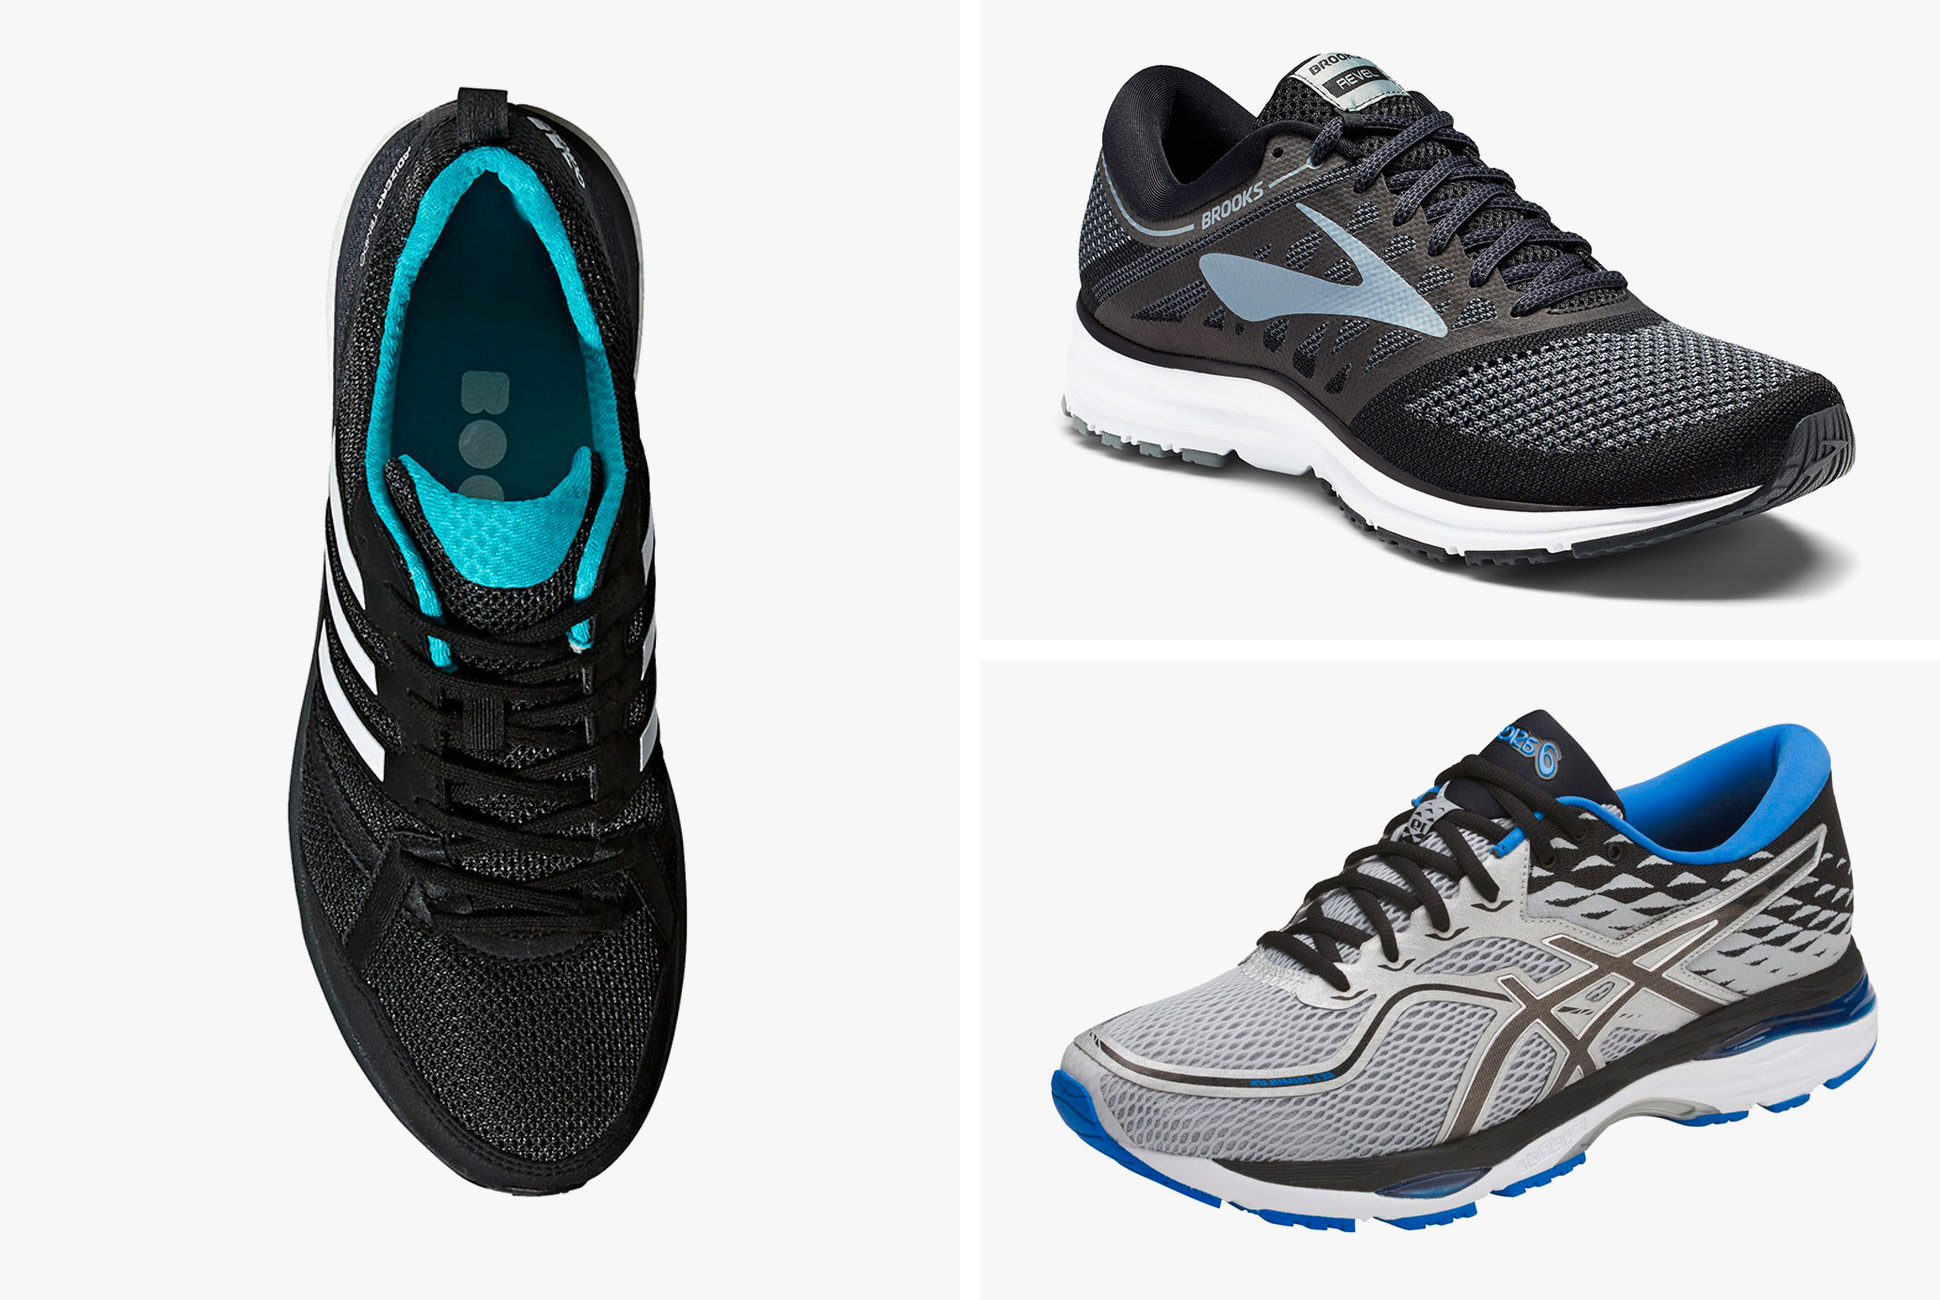 meet e7f2b 473df Adidas, Asics and Brooks Running Sneakers on Sale Save 50% With fall racing  season right around the corner, now is a good time to start thinking about  a new ...